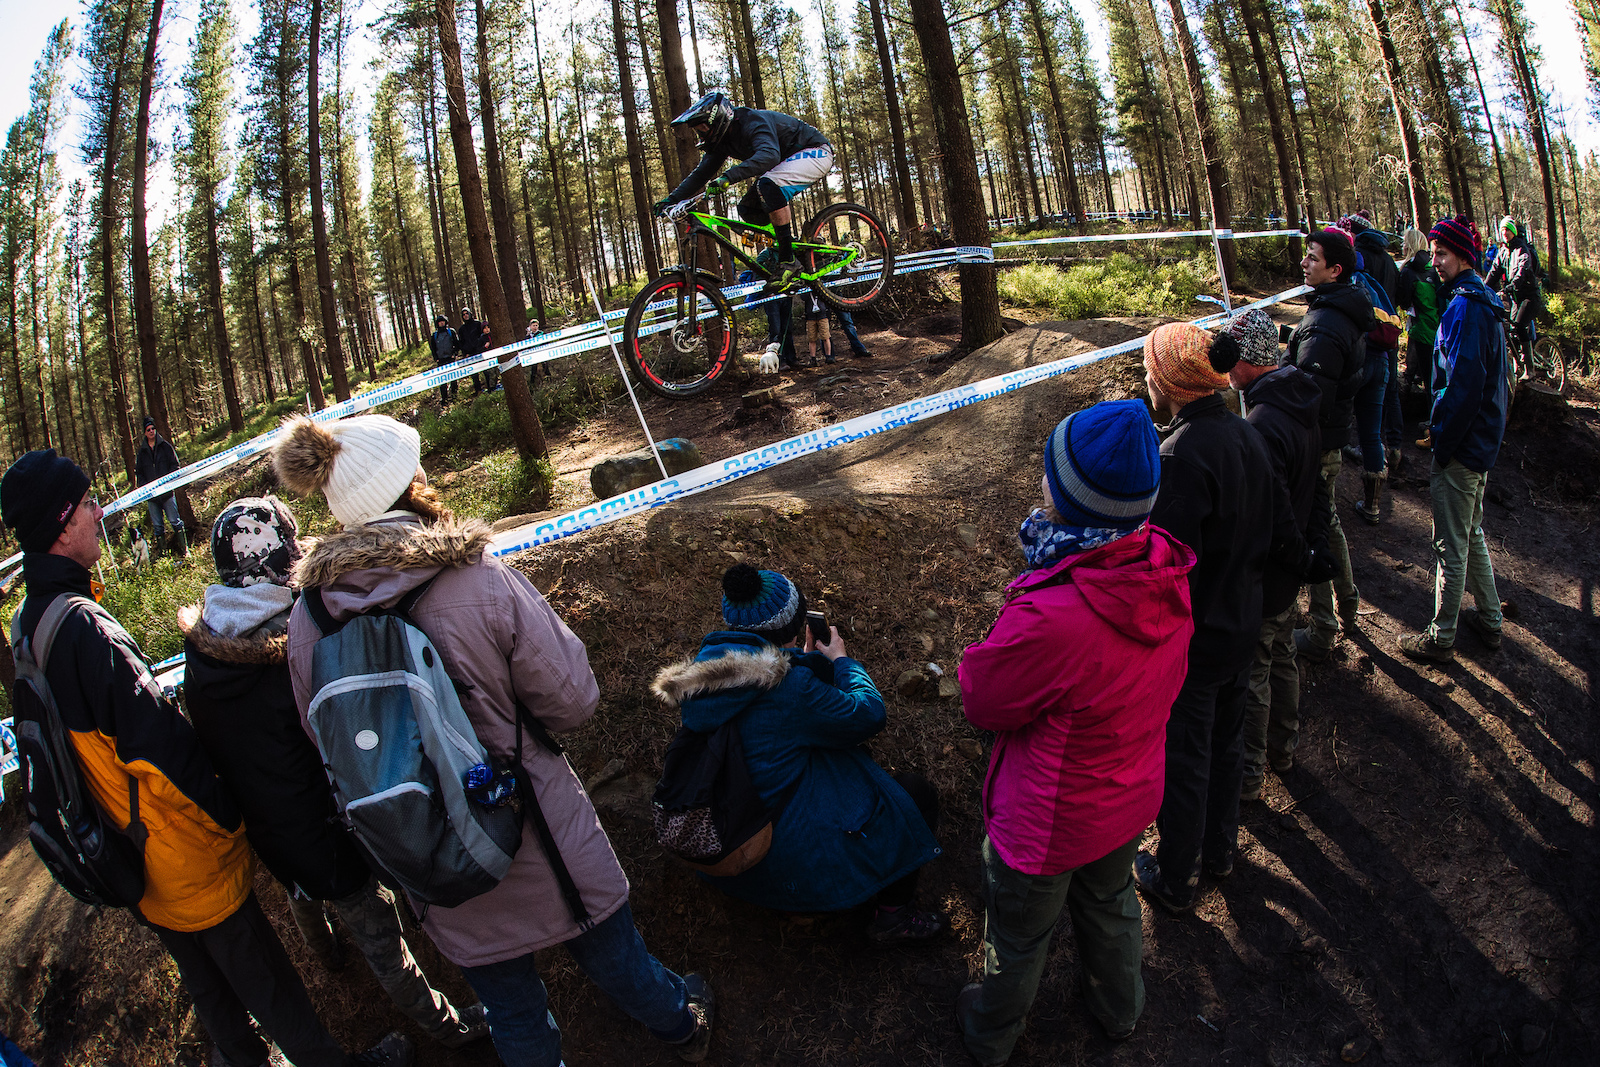 Jim Buchanan the UK editor of Enduro Mag came to race at the Steel City DH again. He couldn t quite match his 4th place of last year and settled for 9th instead.